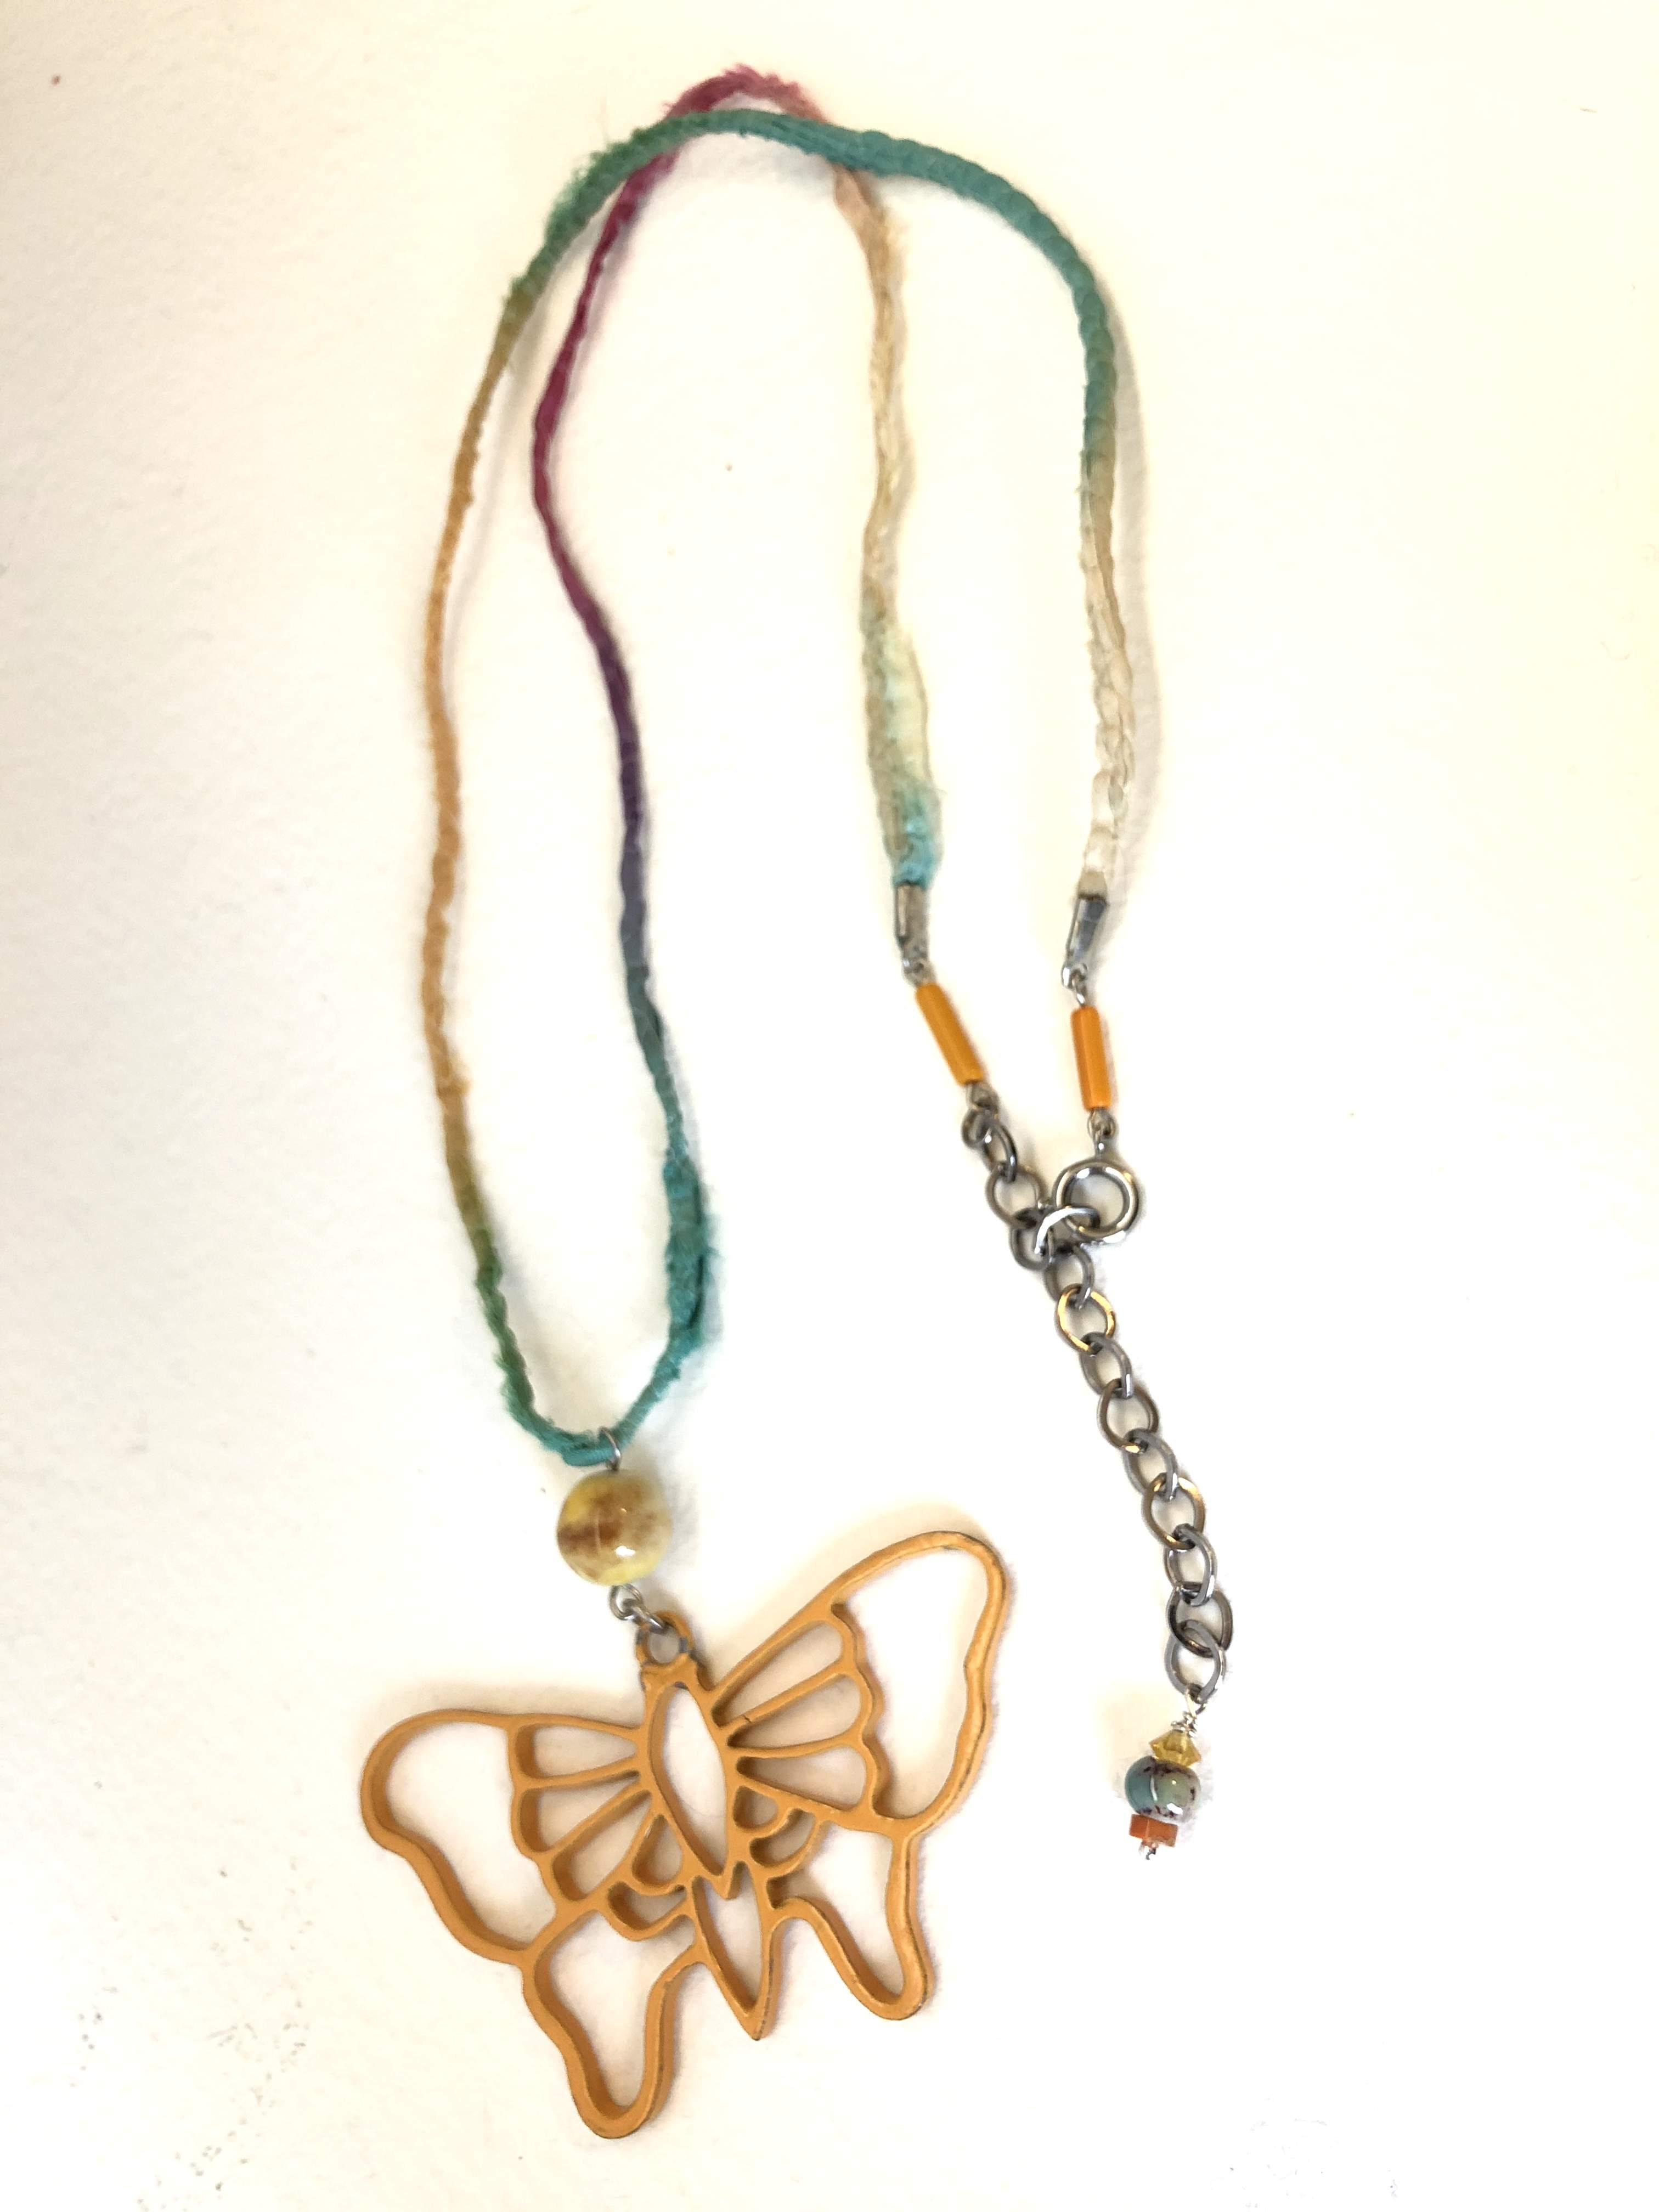 A rescued butterfly pendant, featured on a colorful sari cord with added porcelain beads, adjustable